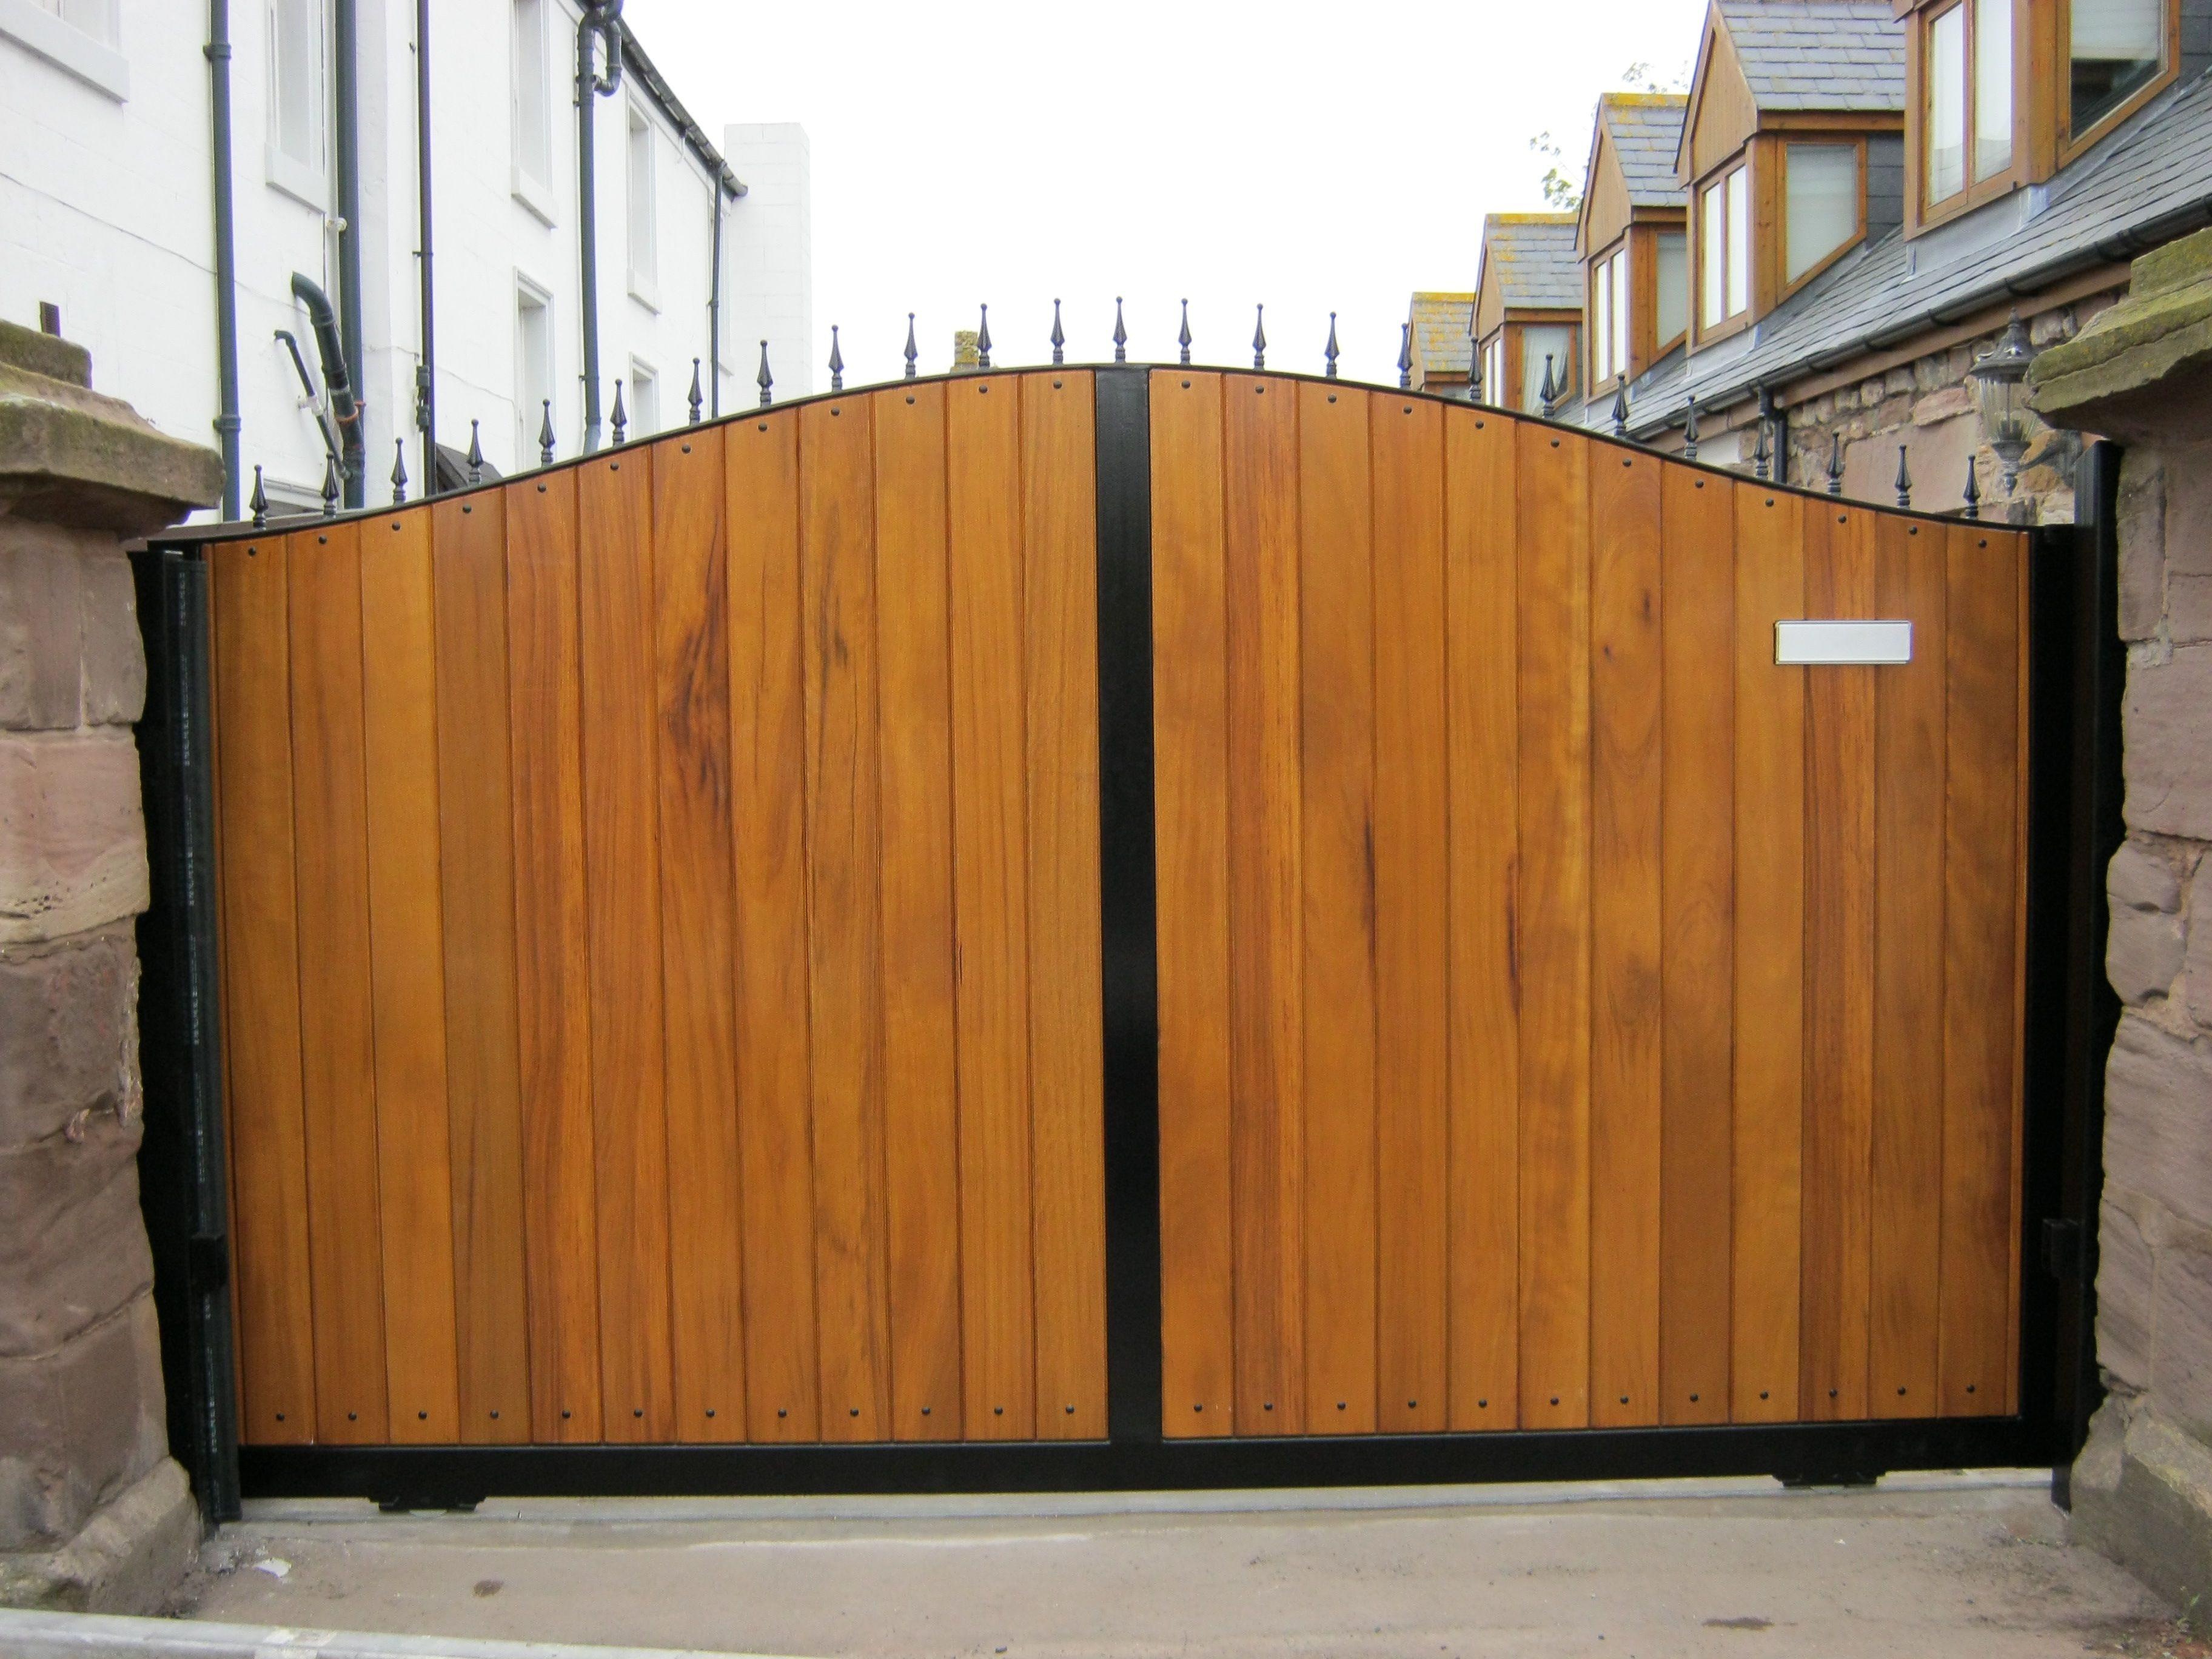 Wooden Security Gates Security Gates Gate Driveway Gate